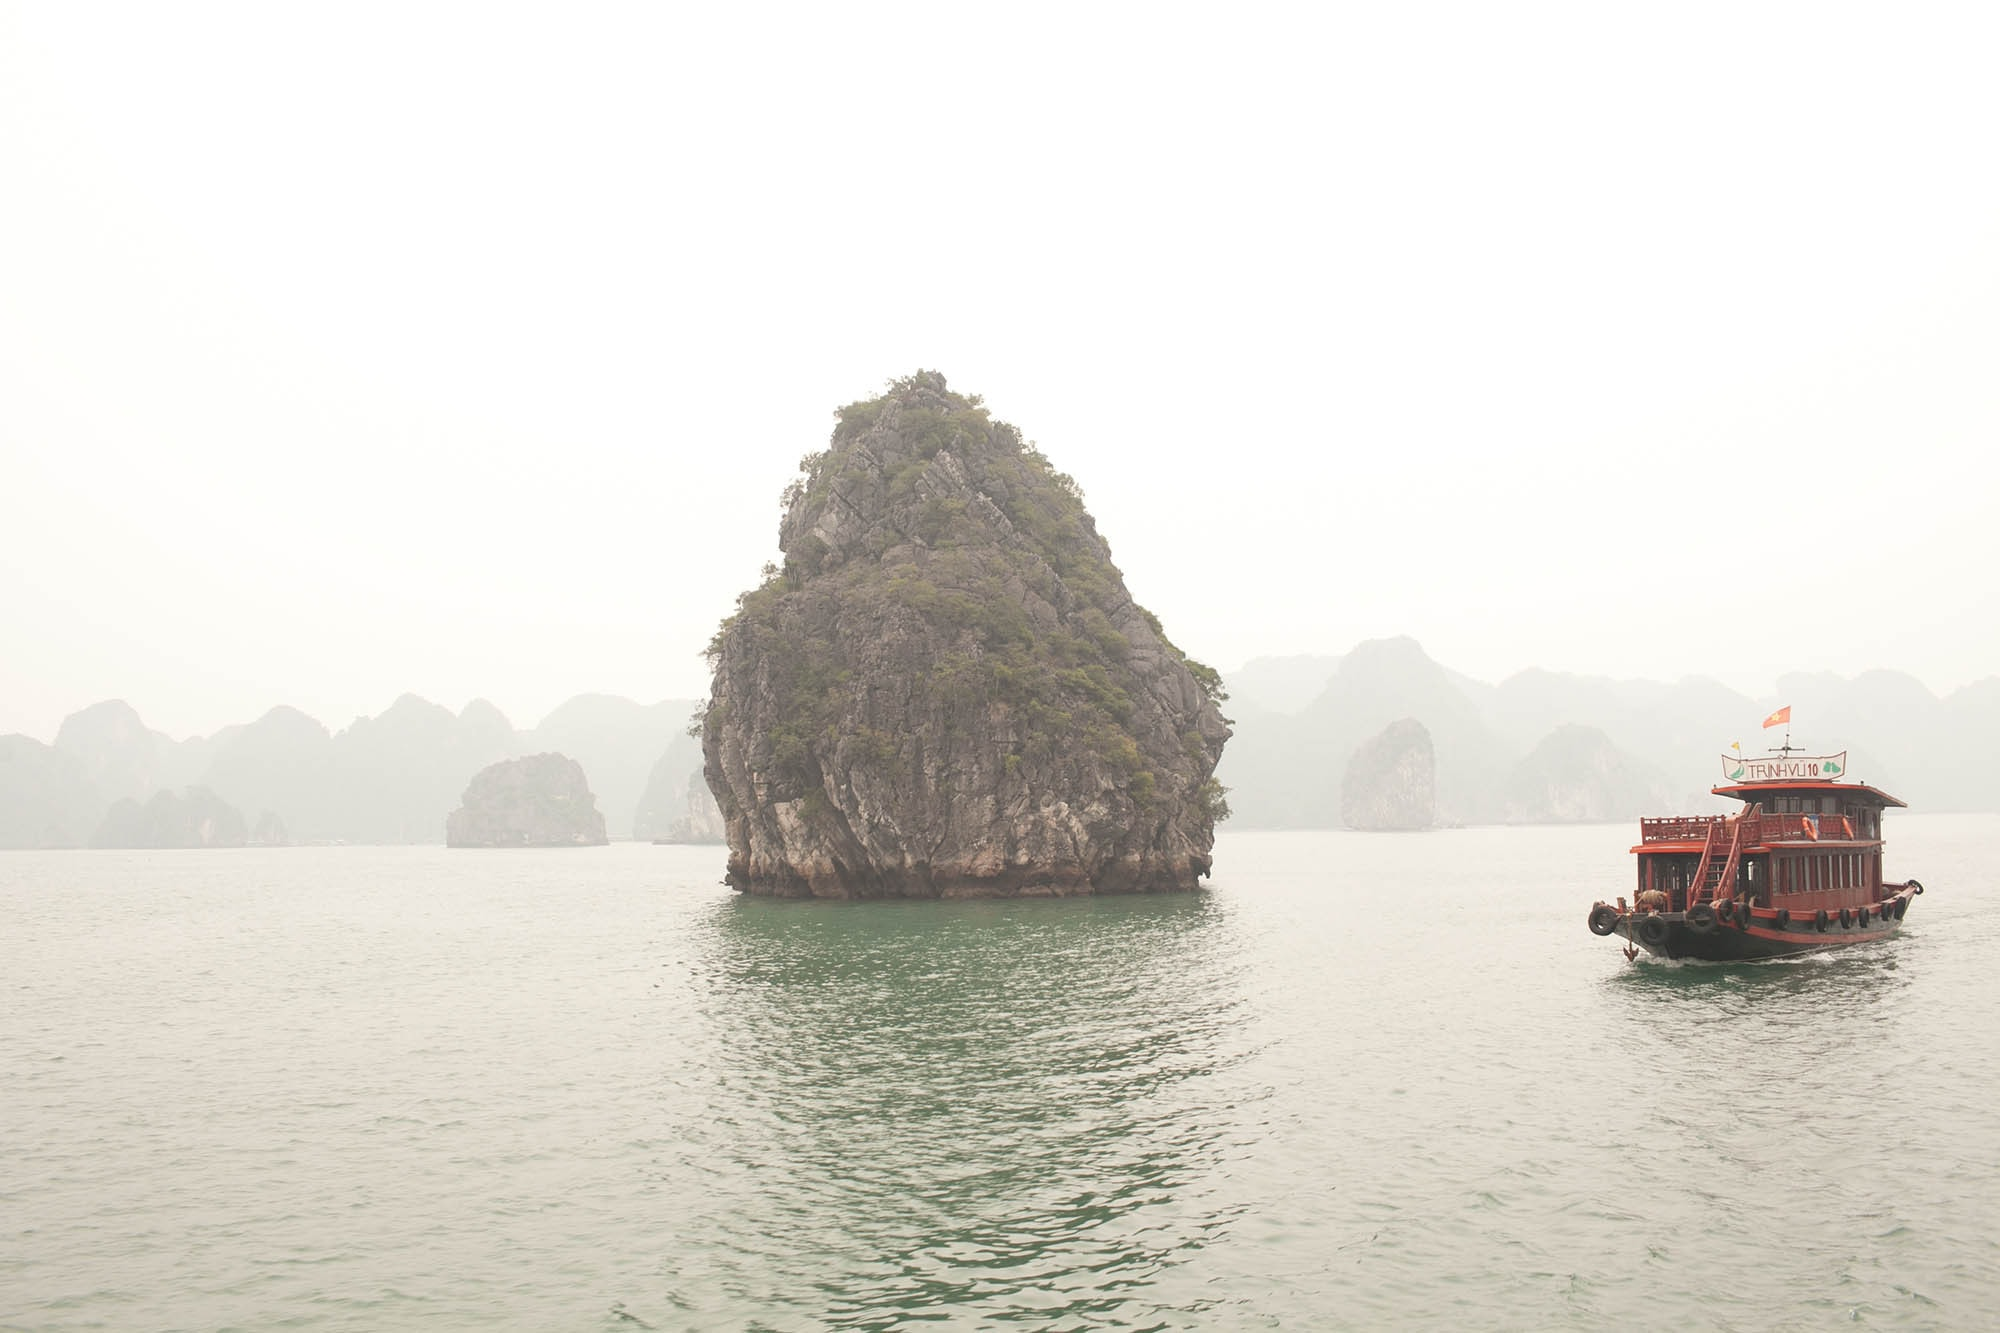 Halong Bay New Year's Eve Tour in Vietnam - Halong Bay Castaway Tour with Hanoi Backpackers on the Jolly Roger and Castaways Island.